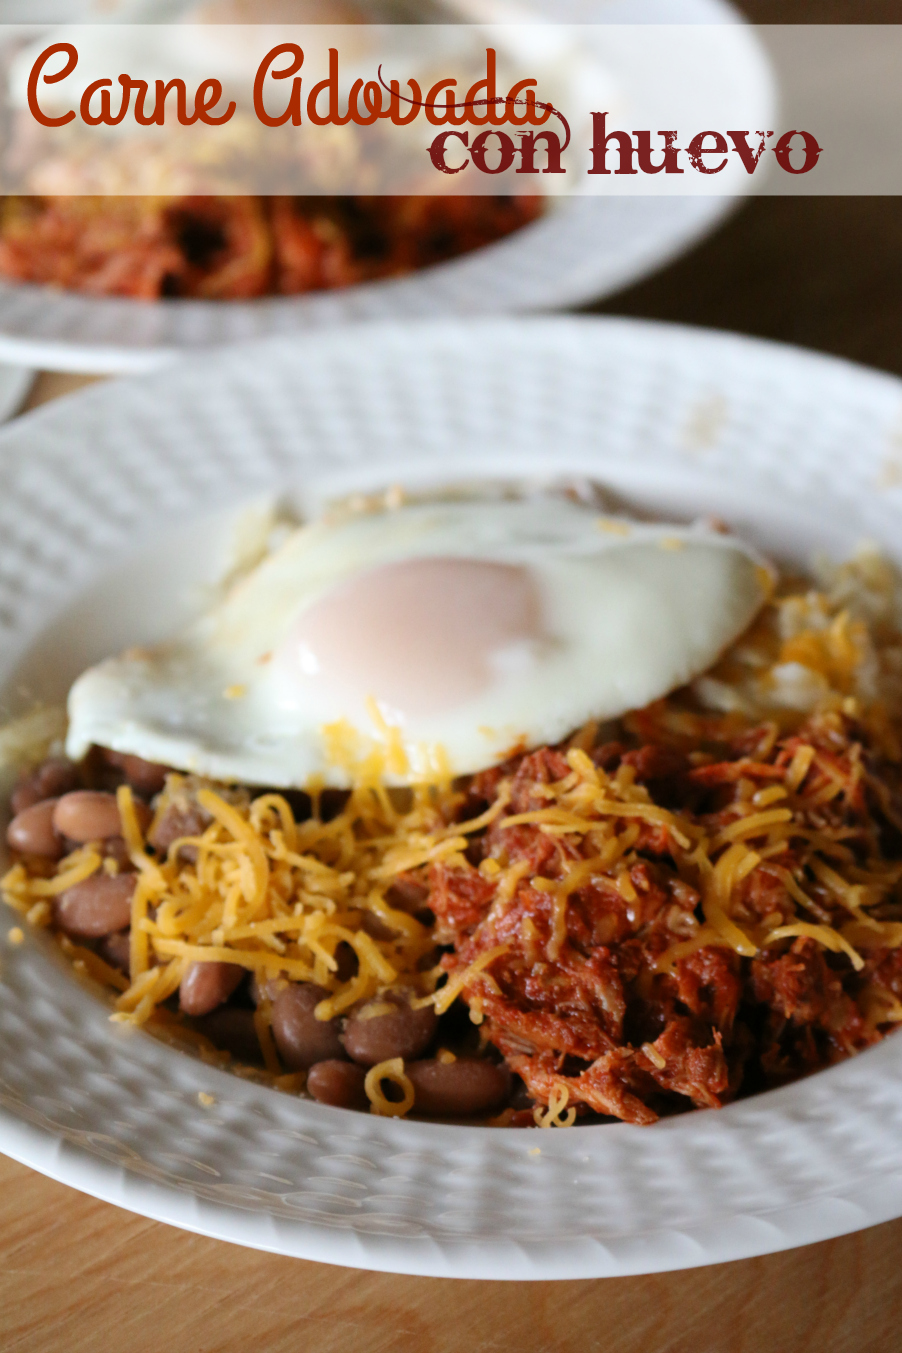 Carne Adovado Con Huevo - Carne Adovado Con Huevo - Pork marinated in Red Chile served with a fried egg.